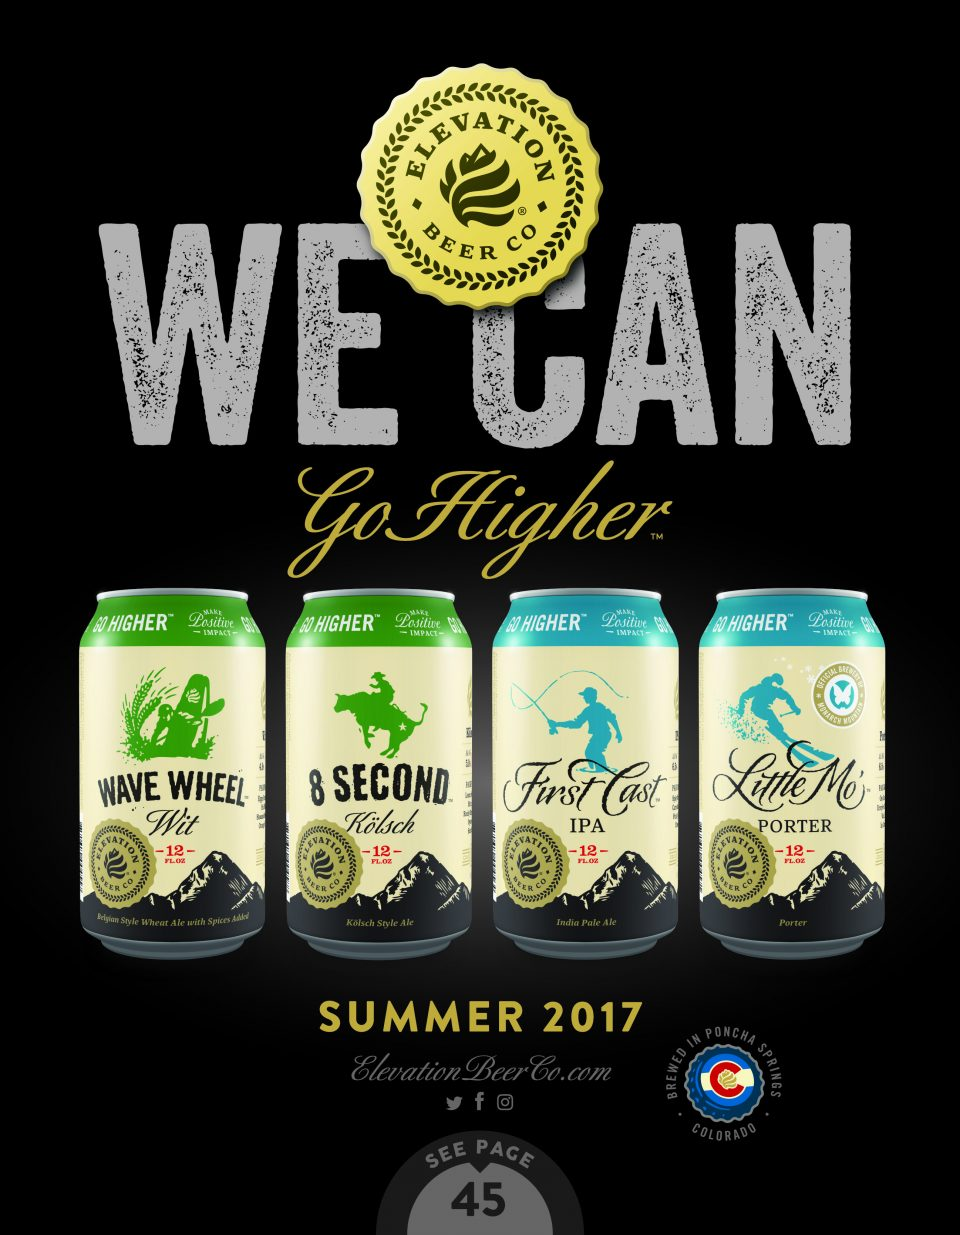 Elevation Beer Company cans